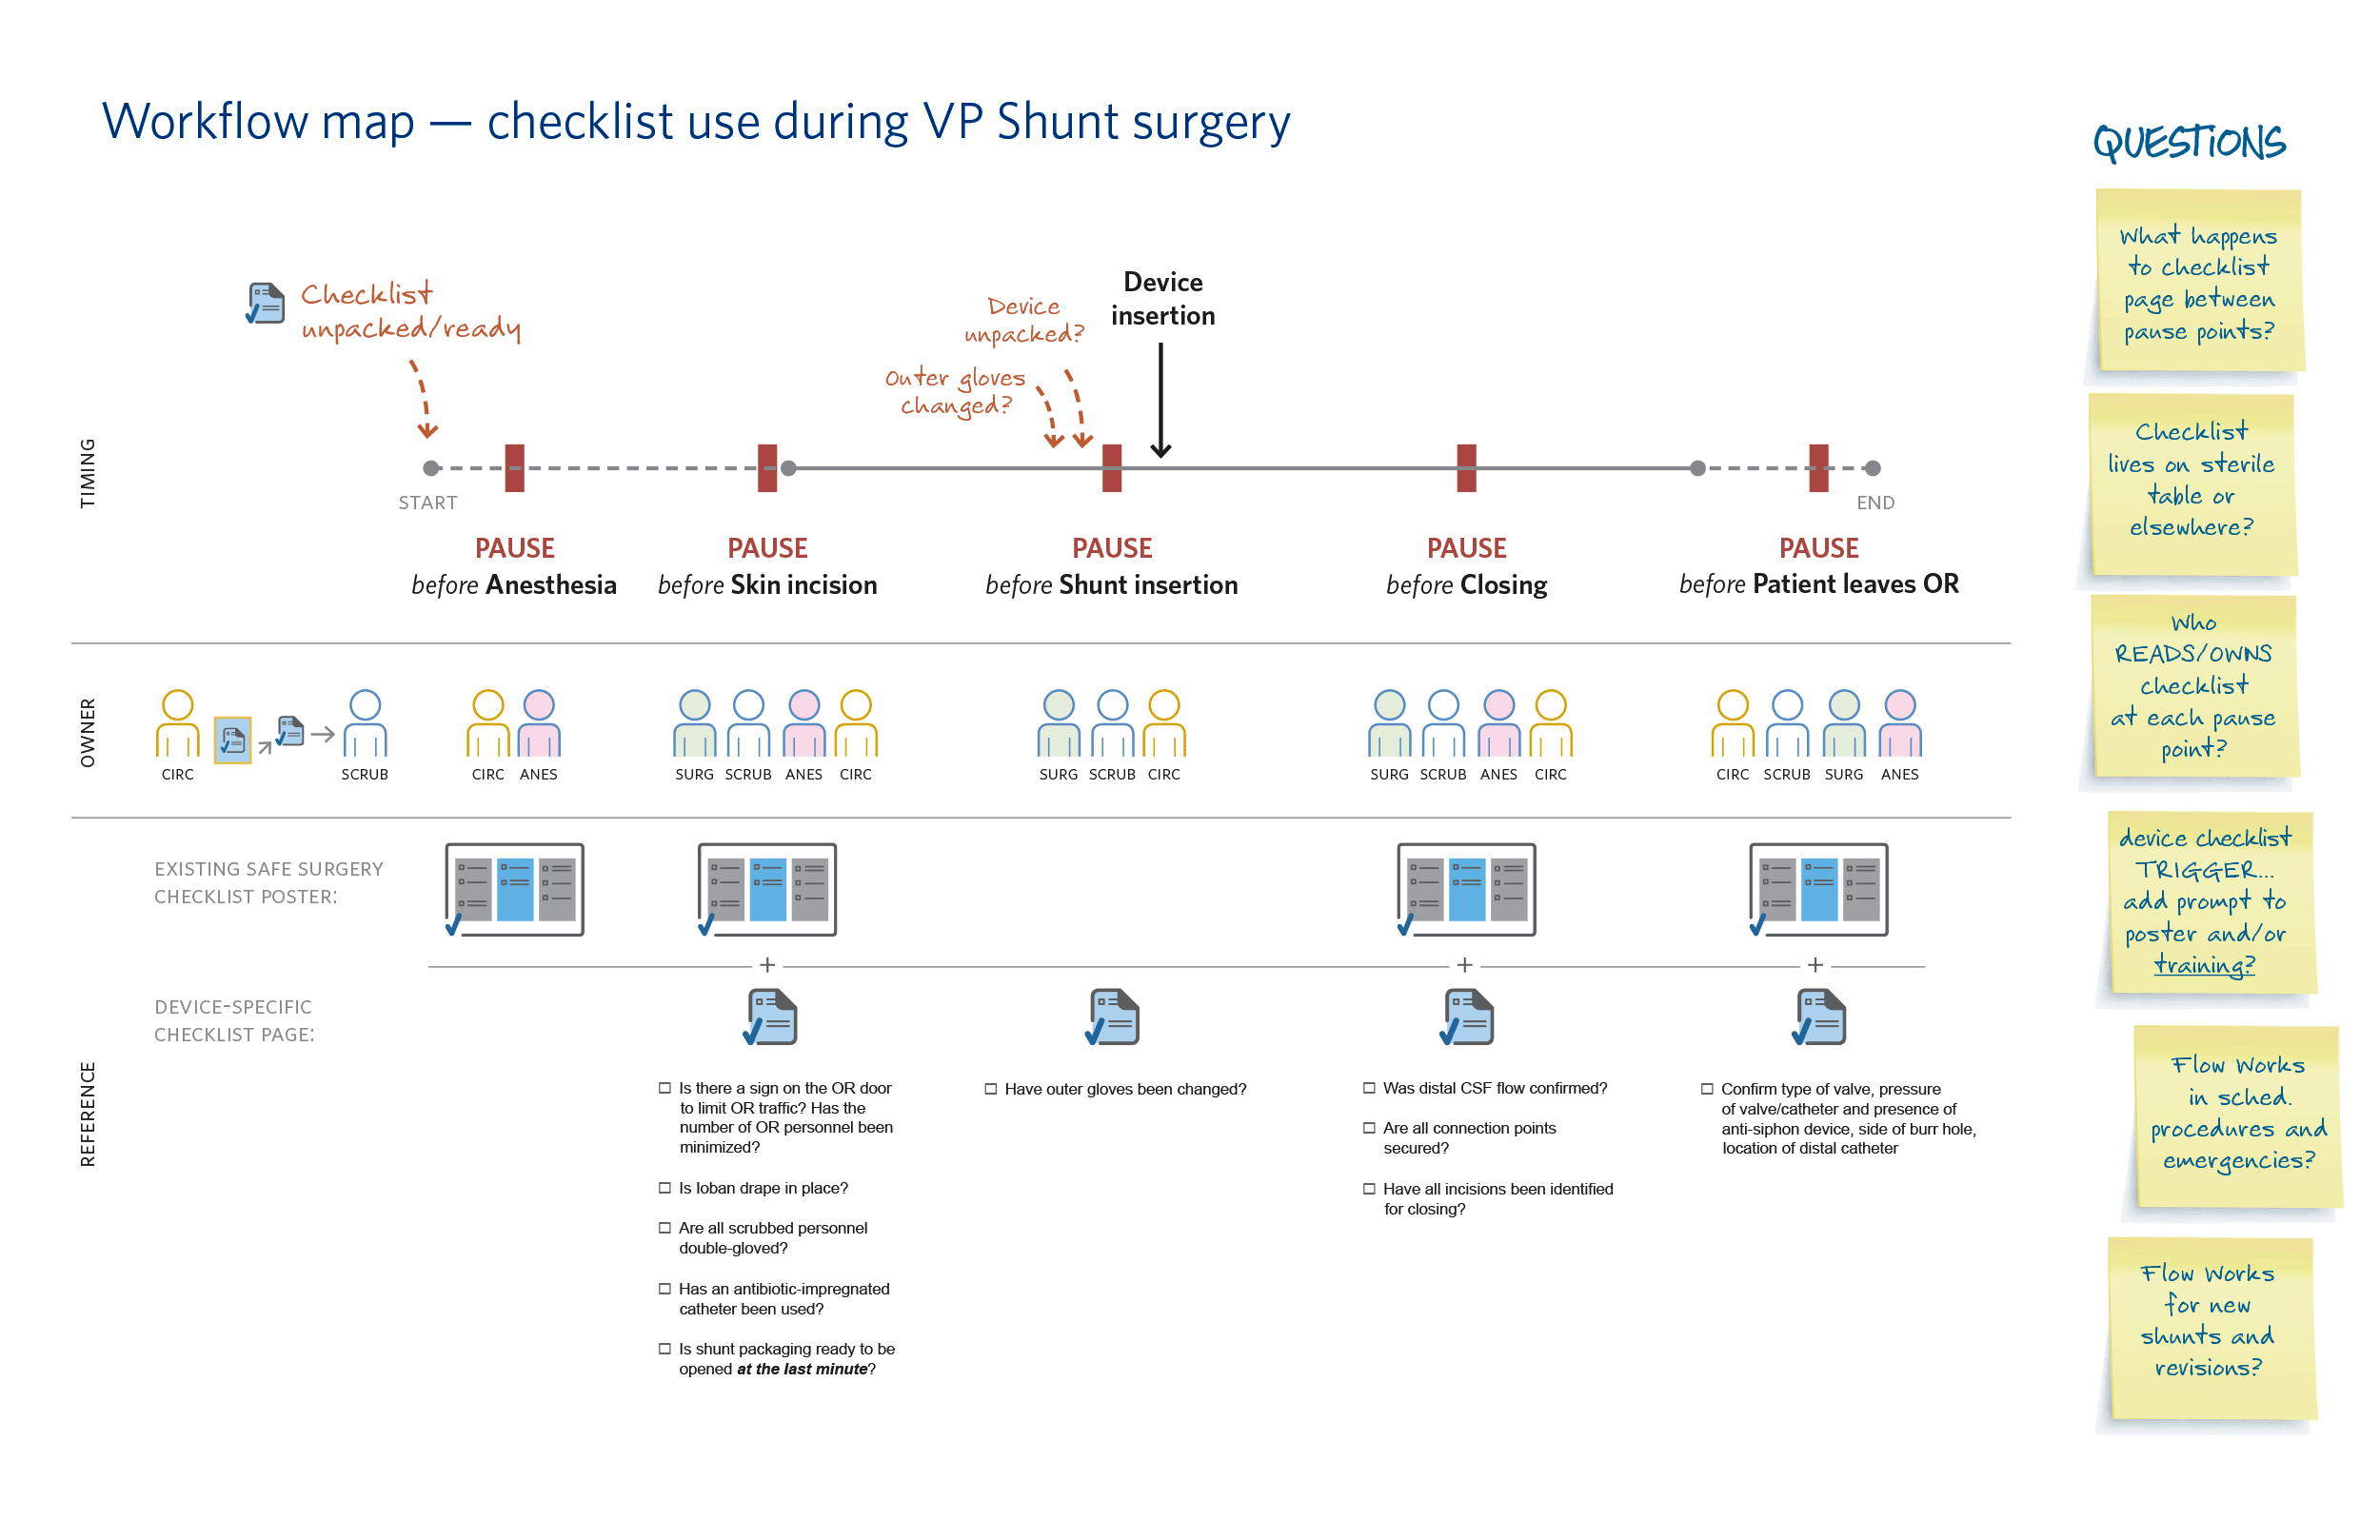 Workflow map of checklist use during VP shunt surgery.